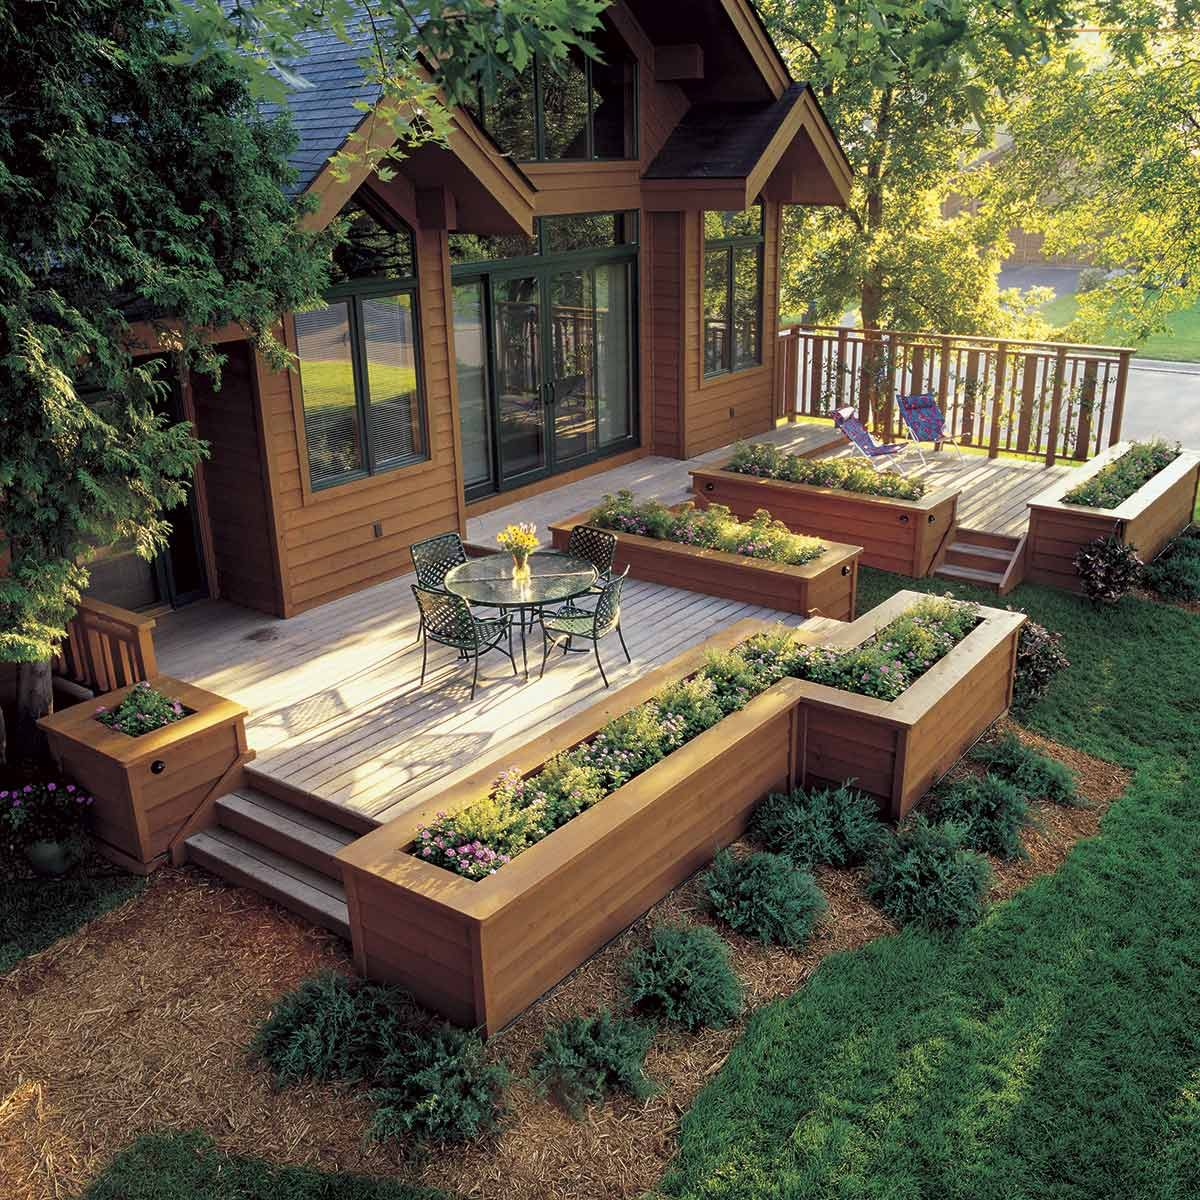 16 Gorgeous Deck And Patio Ideas You Can DIY